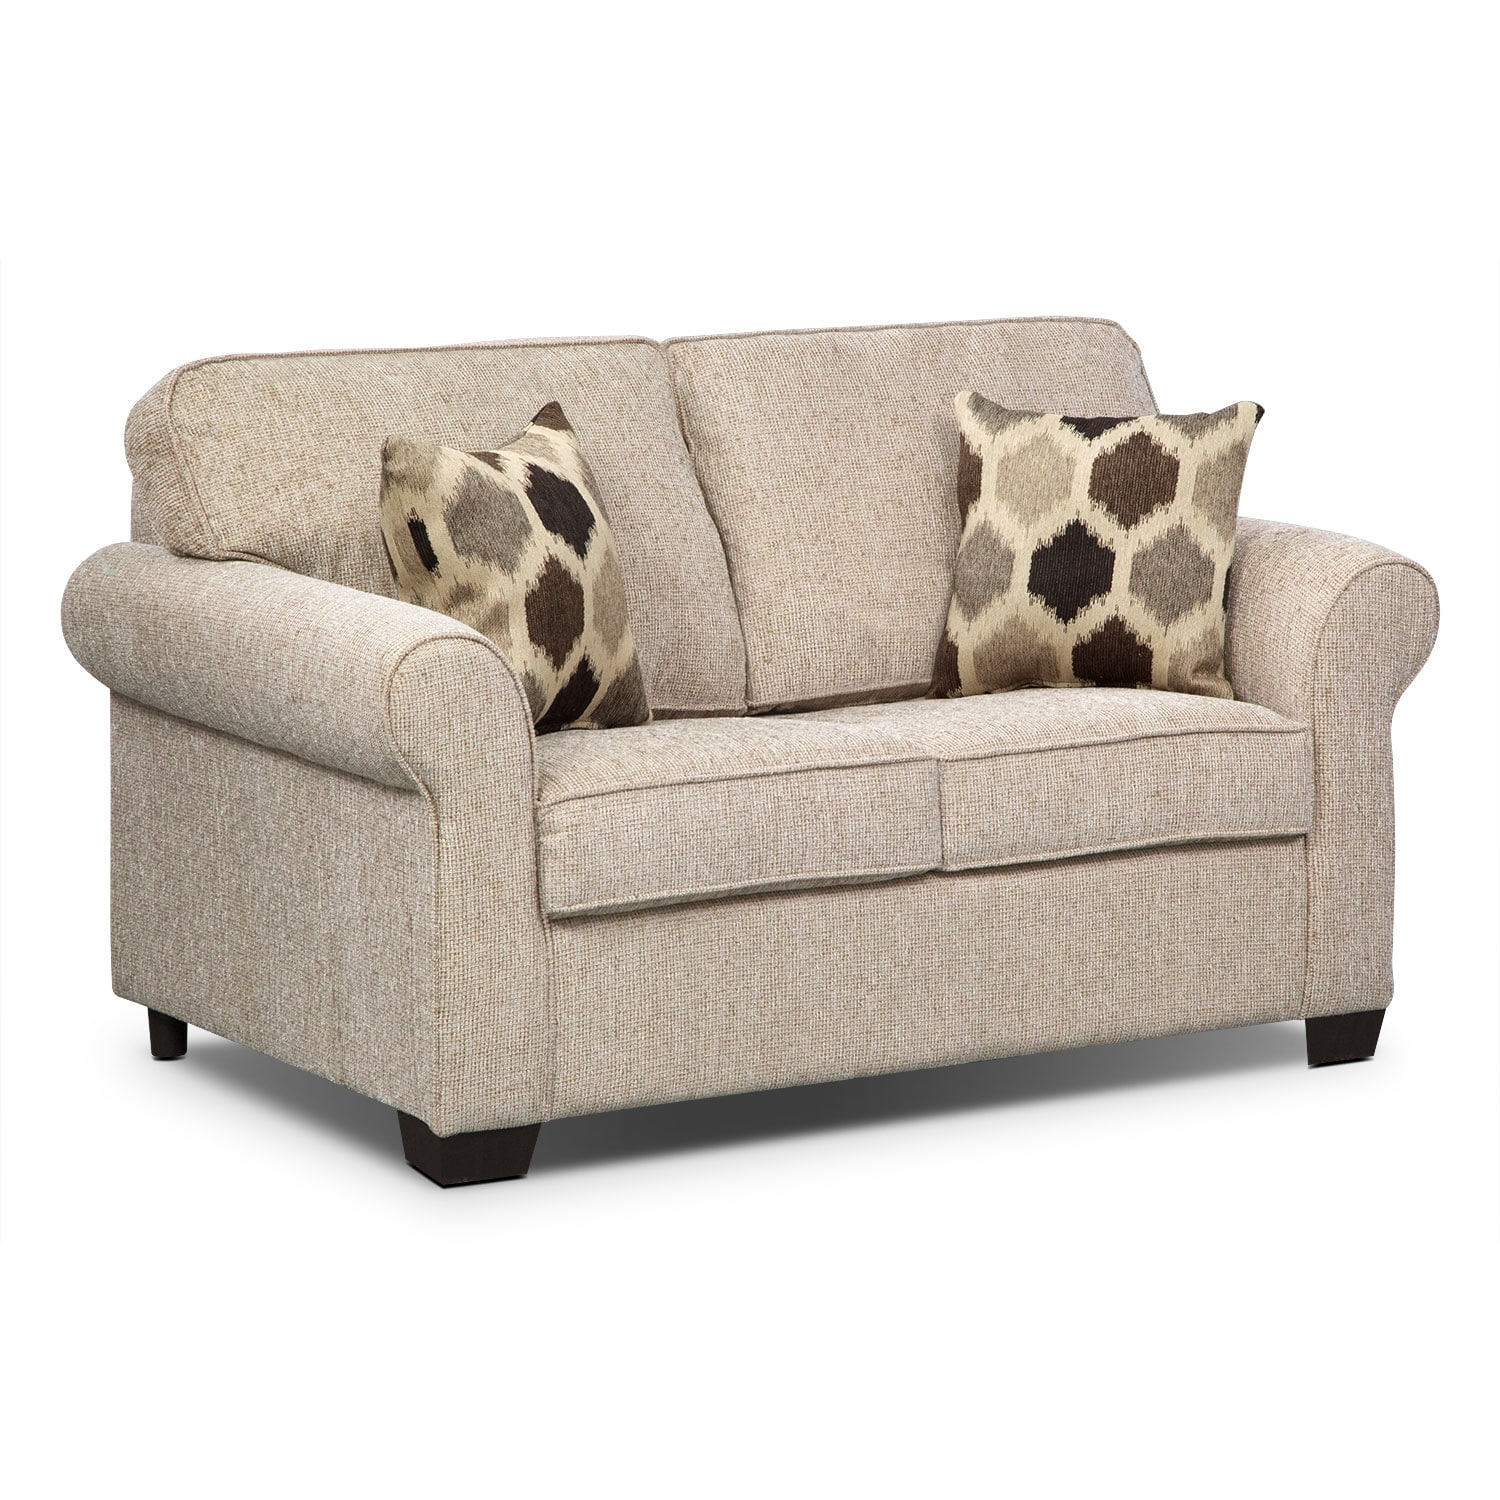 Fletcher Twin Memory Foam Sleeper Sofa Value City Furniture